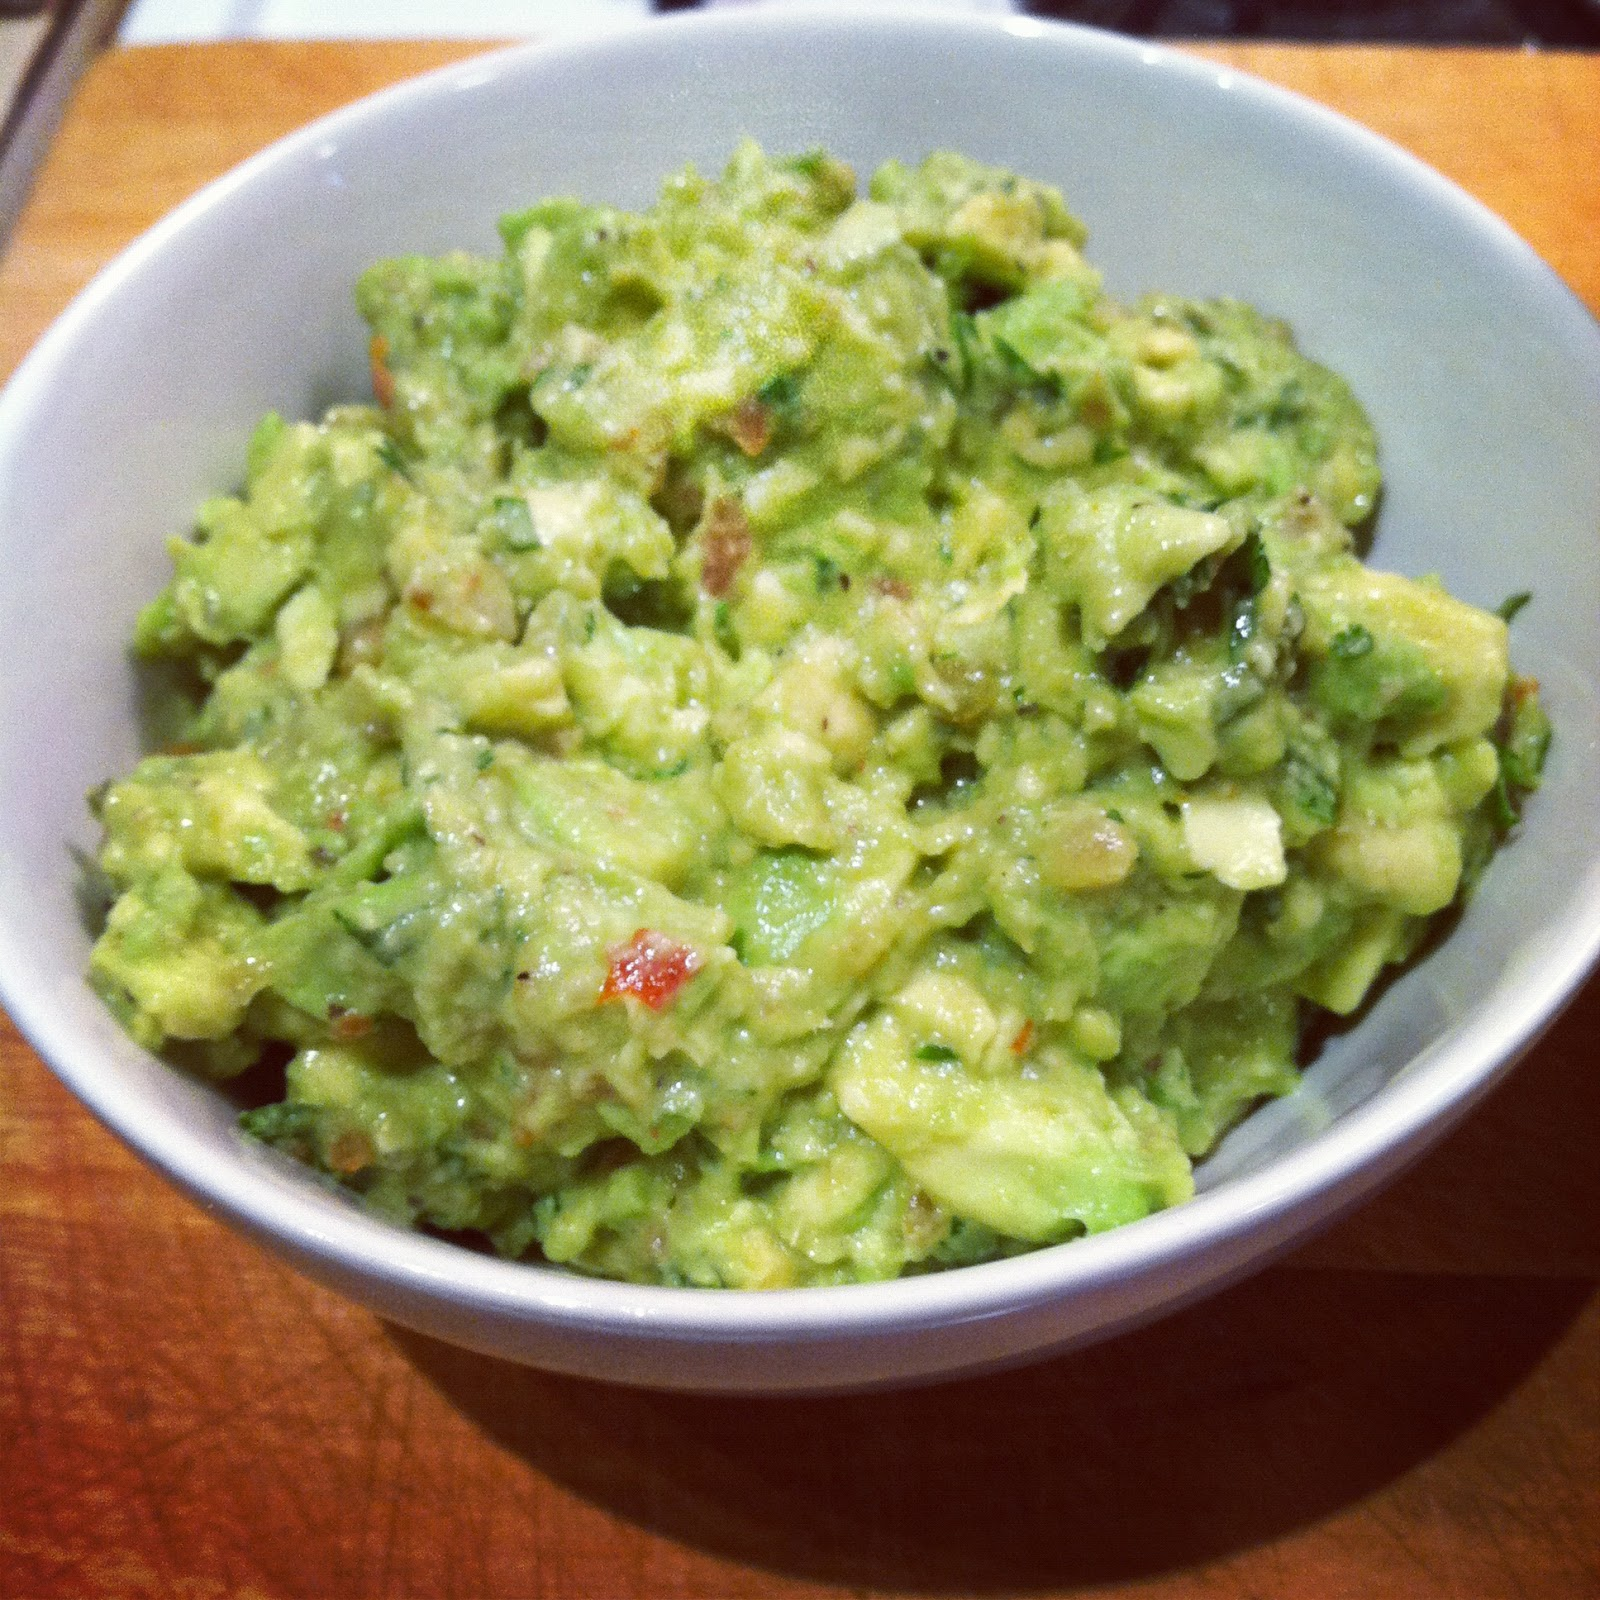 Quest for Delish: Guacamole